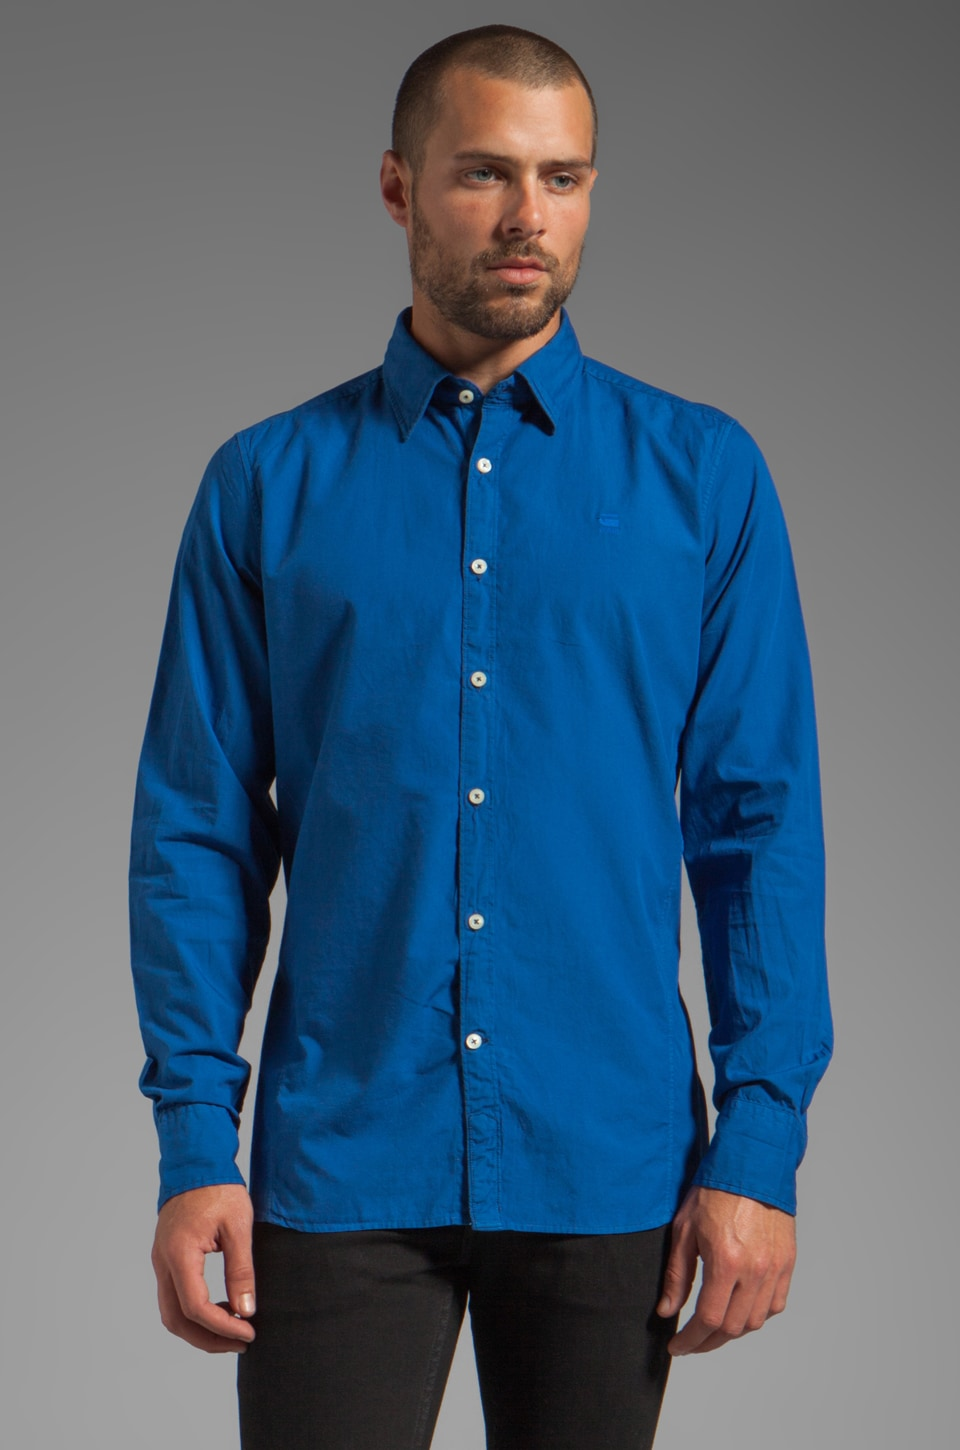 G-Star New Base Long Sleeve Shirt in True Blue